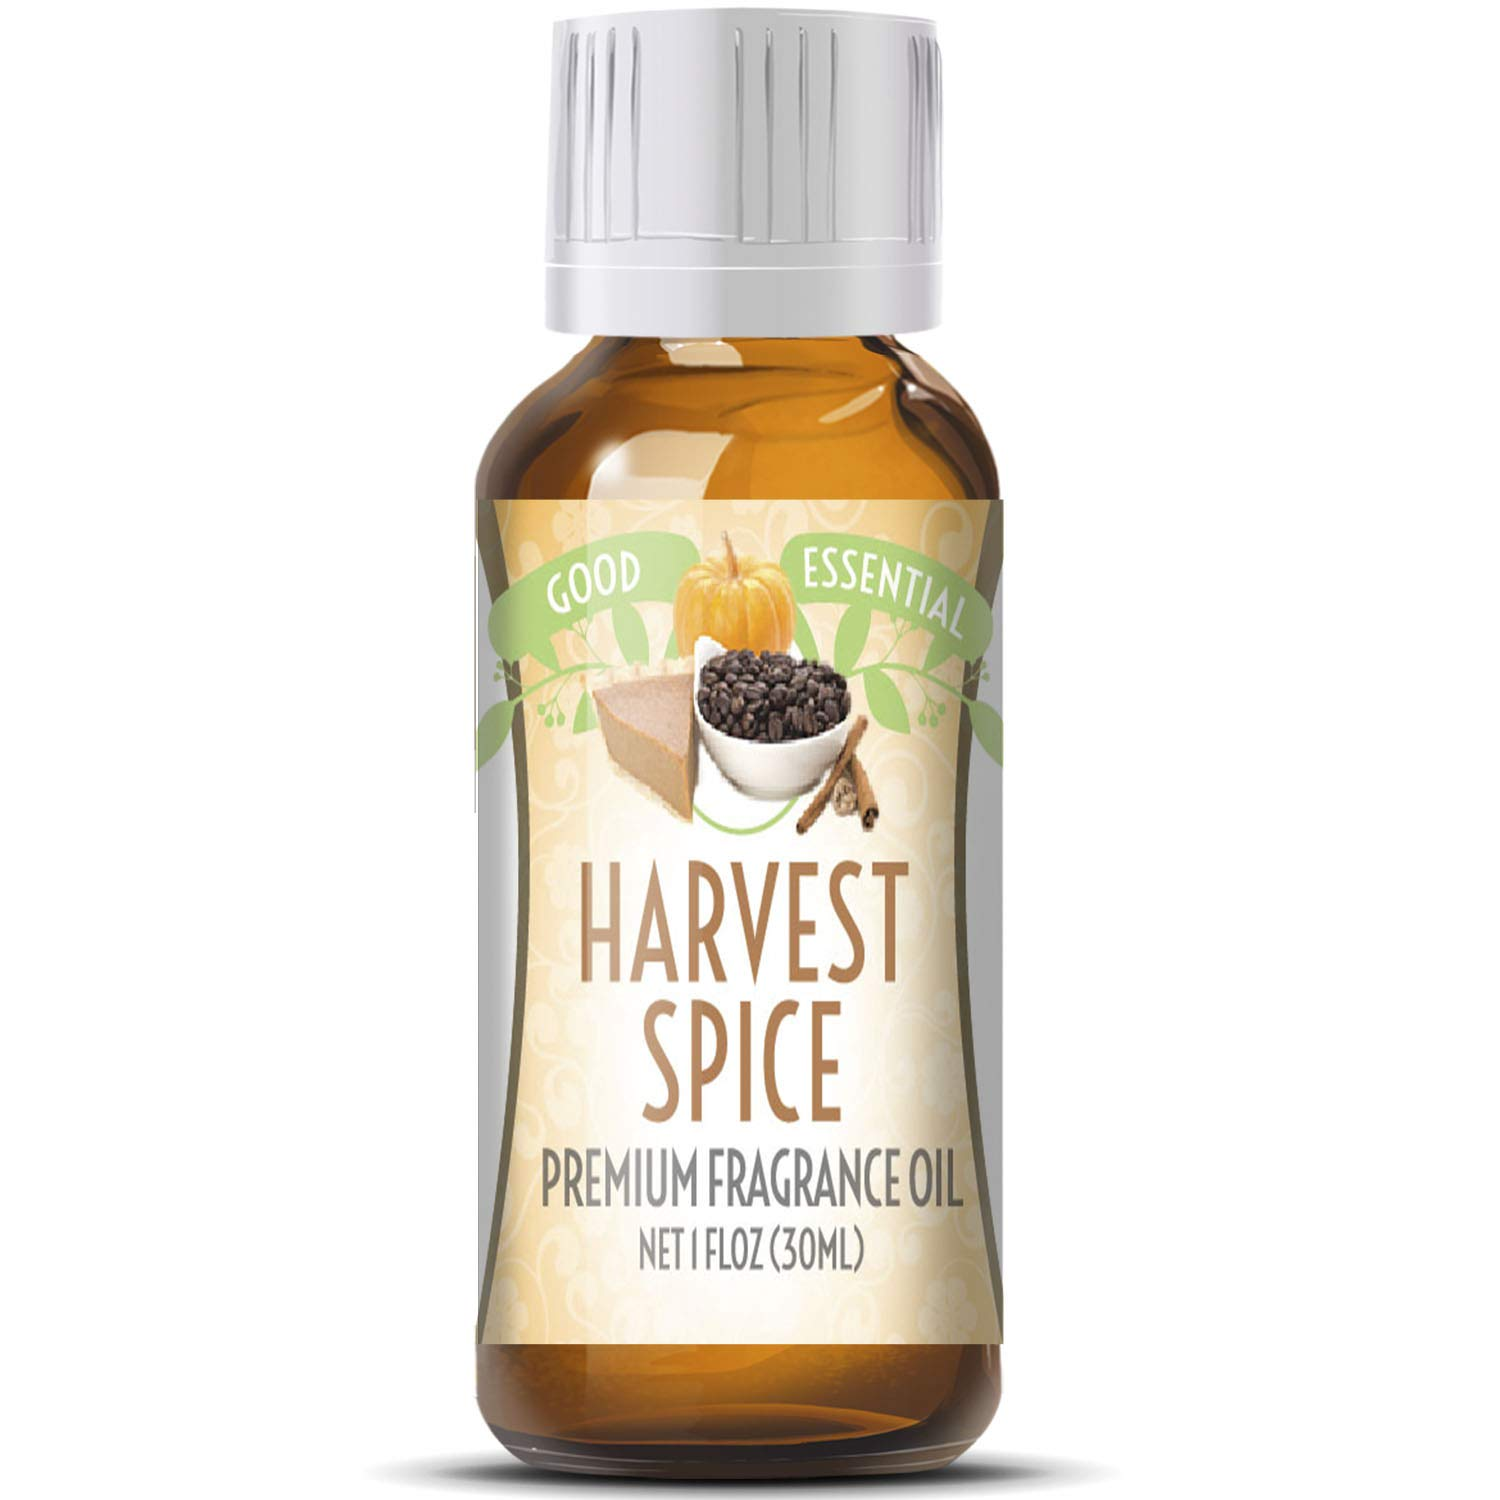 Harvest Spice Scented Oil by Good Essential (Huge 1oz Bottle - Premium Grade Fragrance Oil) - Perfect for Aromatherapy, Soaps, Candles, Slime, Lotions, and More!